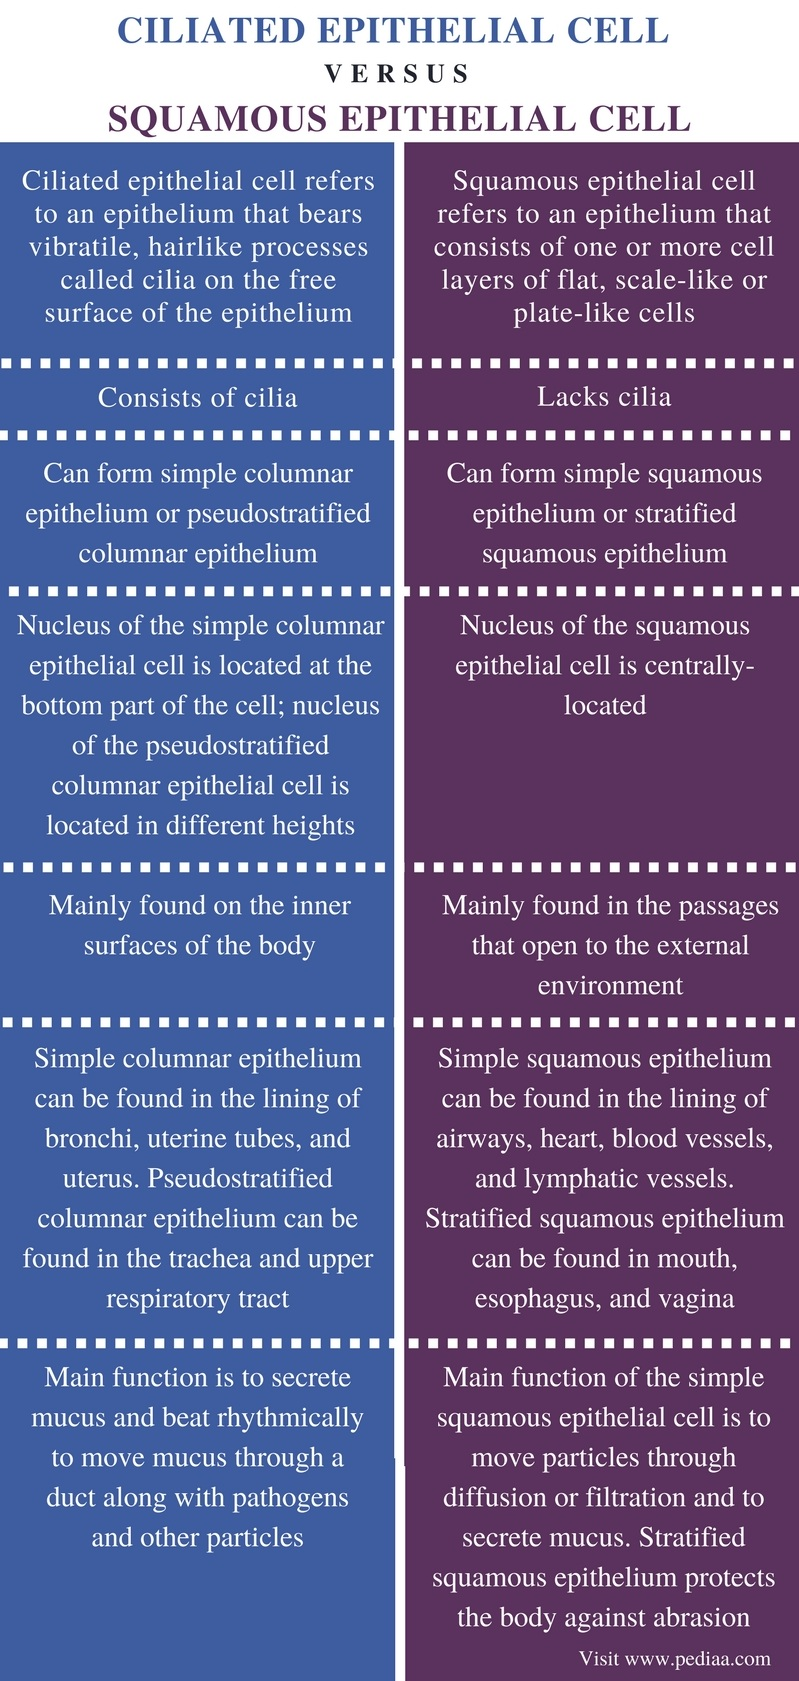 Difference Between Ciliated Epithelial Cell and Squamous Epithelial Cell - Comparison Summary